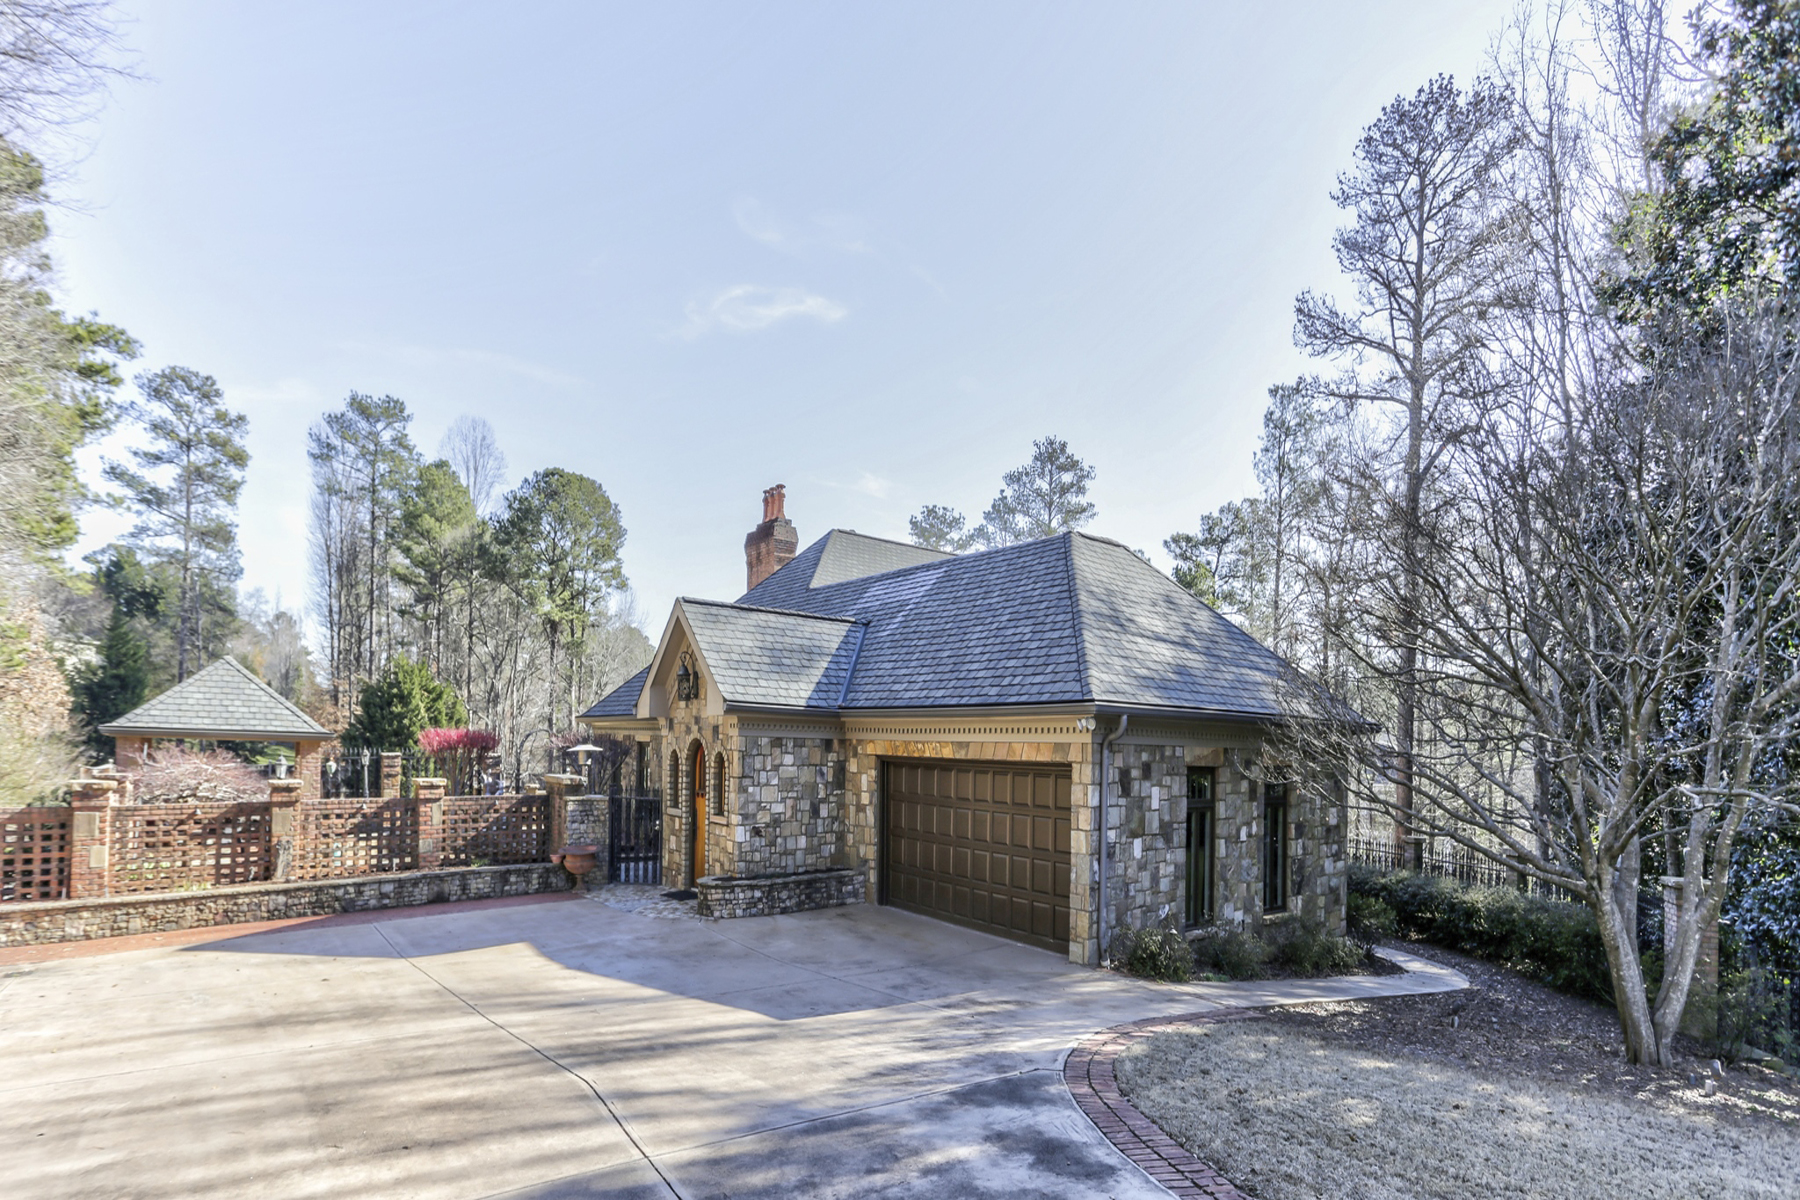 Single Family Home for Sale at Custom Private Oasis In Vinings On One Acre With Pool 3883 Fairfax Court SE Atlanta, Georgia 30339 United States